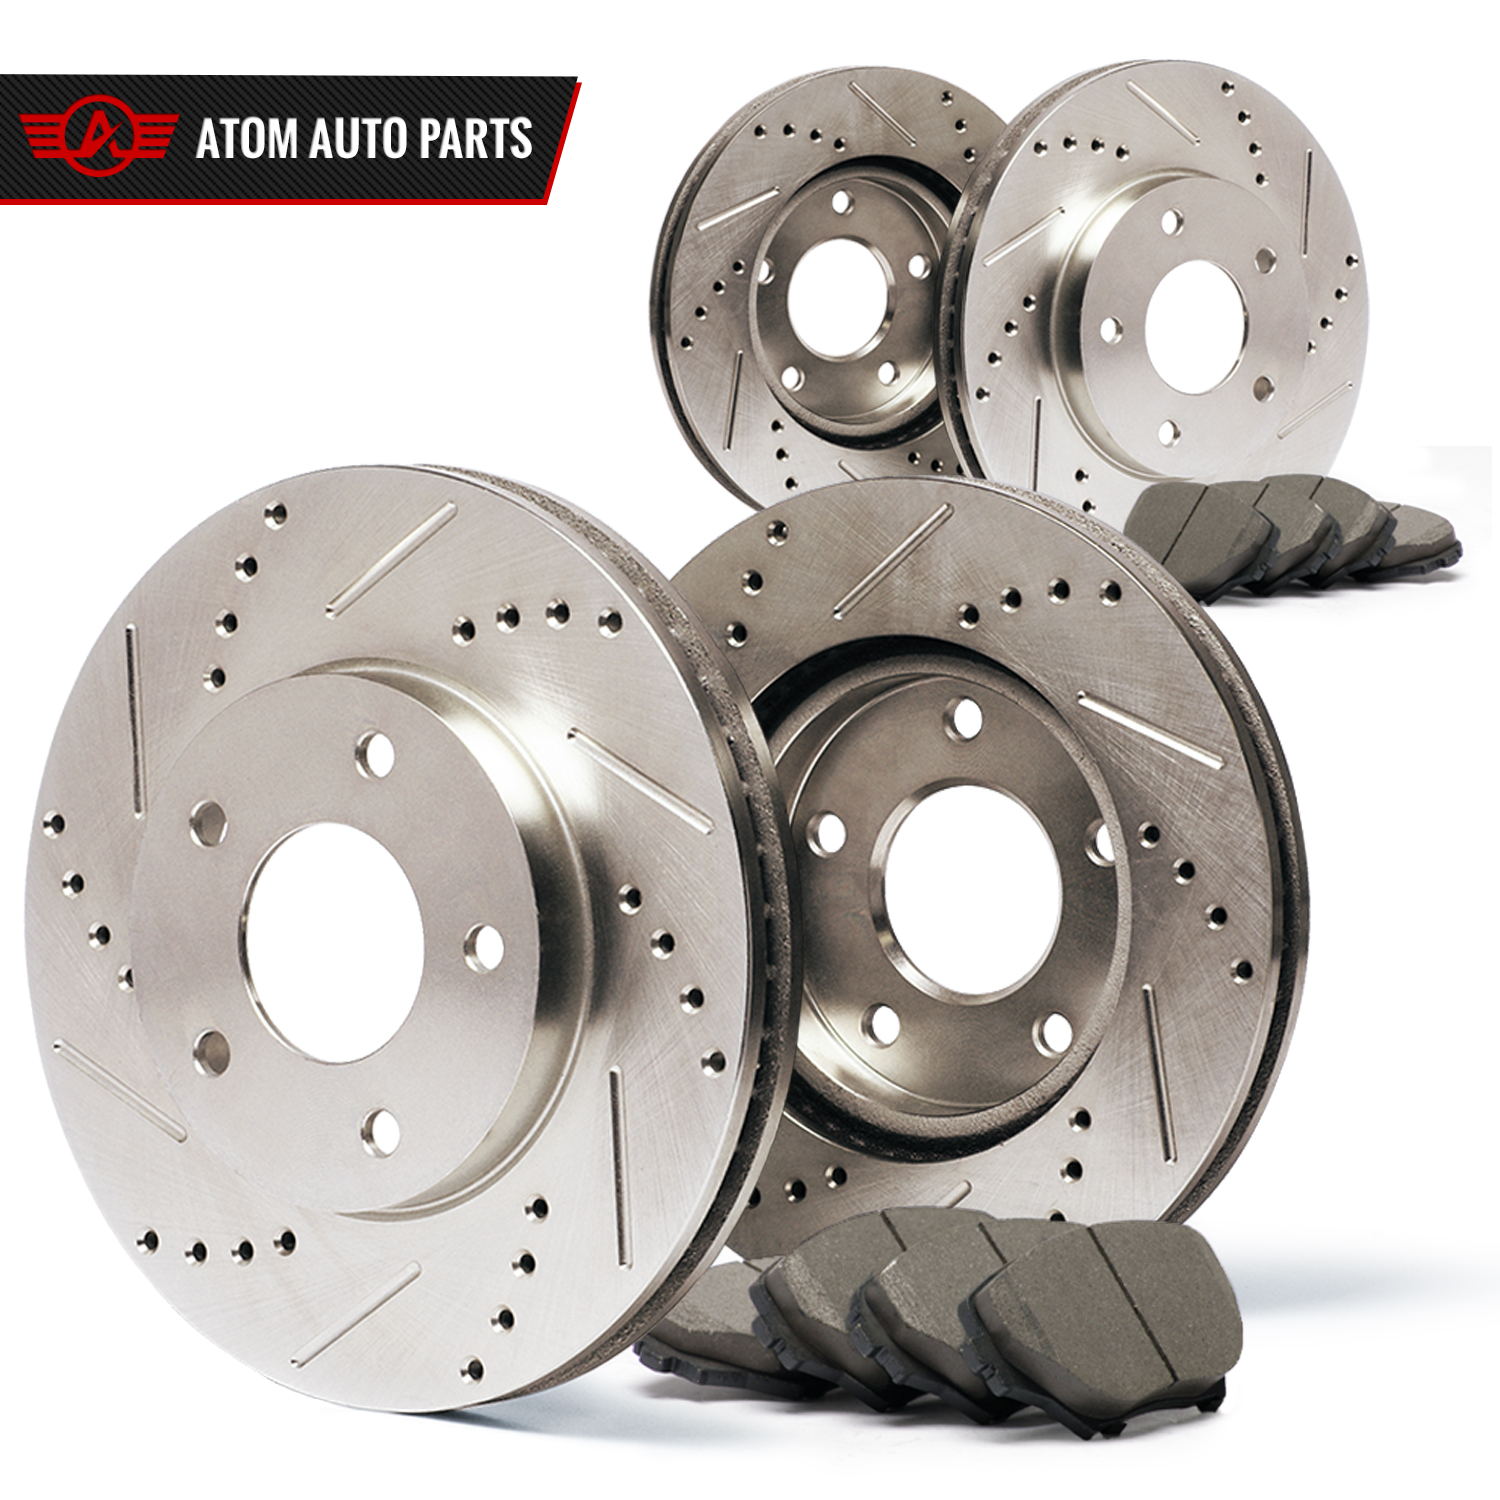 Slotted Drilled See Desc Rotors Ceramic Pads F+R 11 Fits Infiniti M37//M56